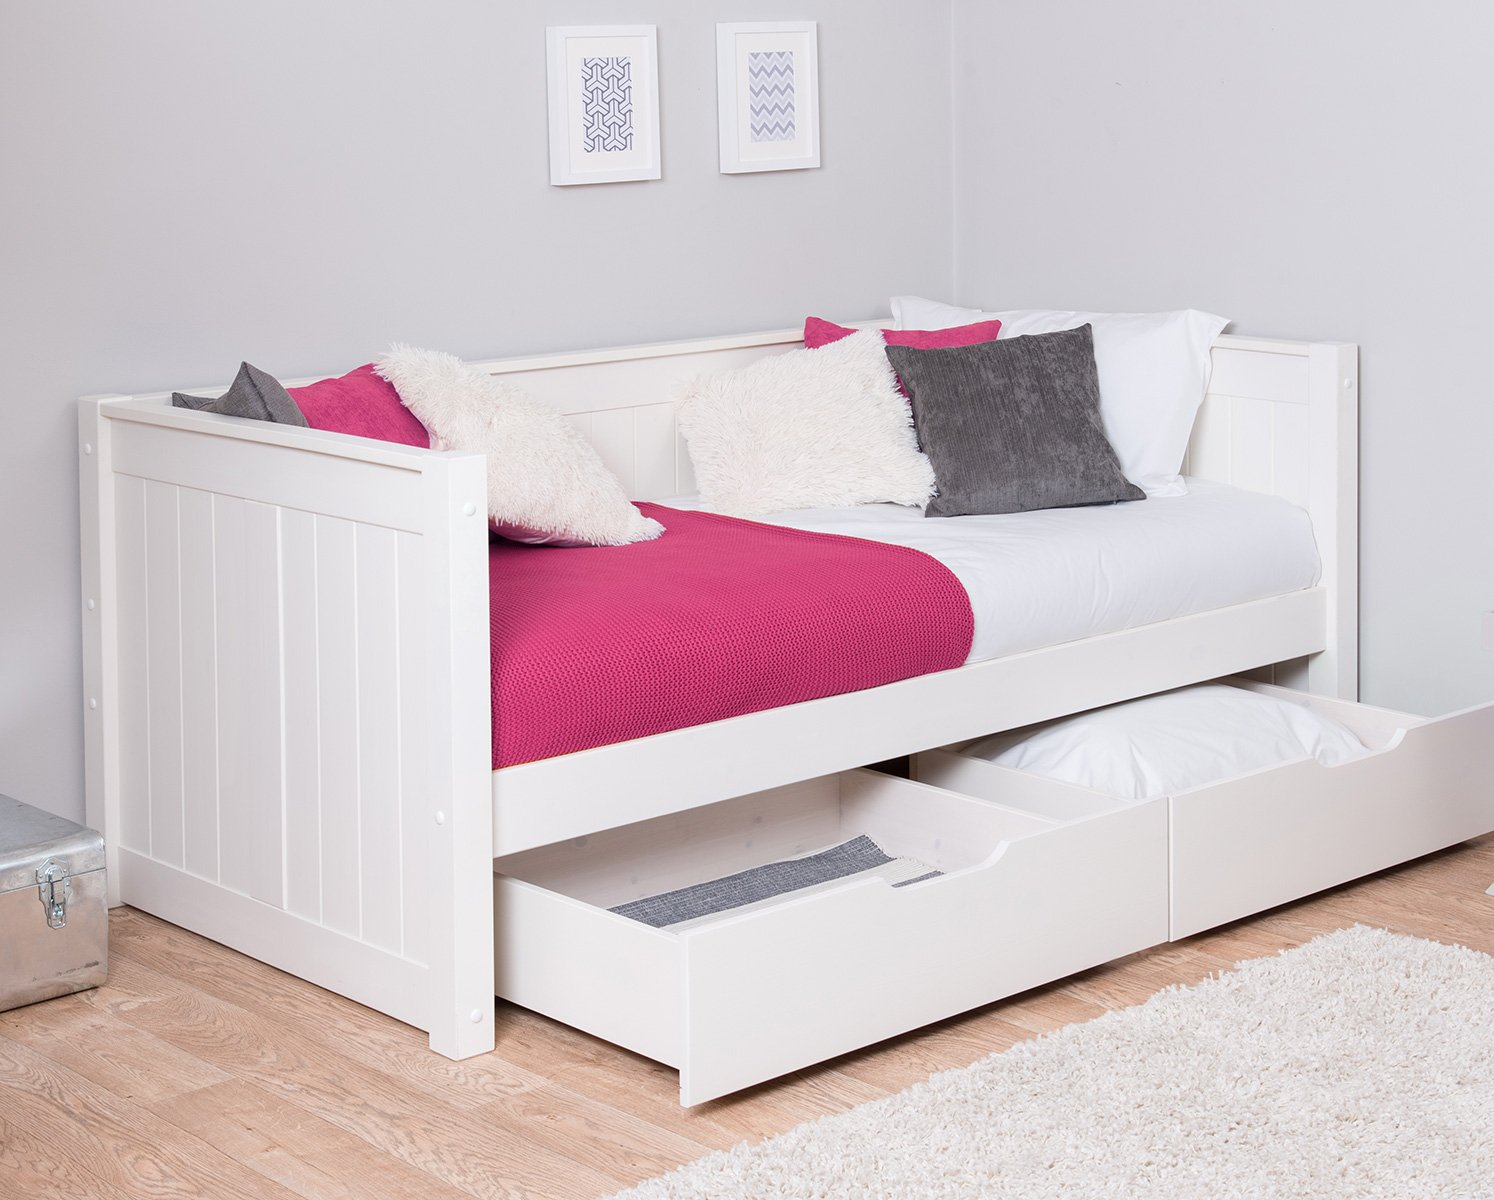 Classic day bed with drawers by stompa for children kids for Bedroom furniture bed with drawers